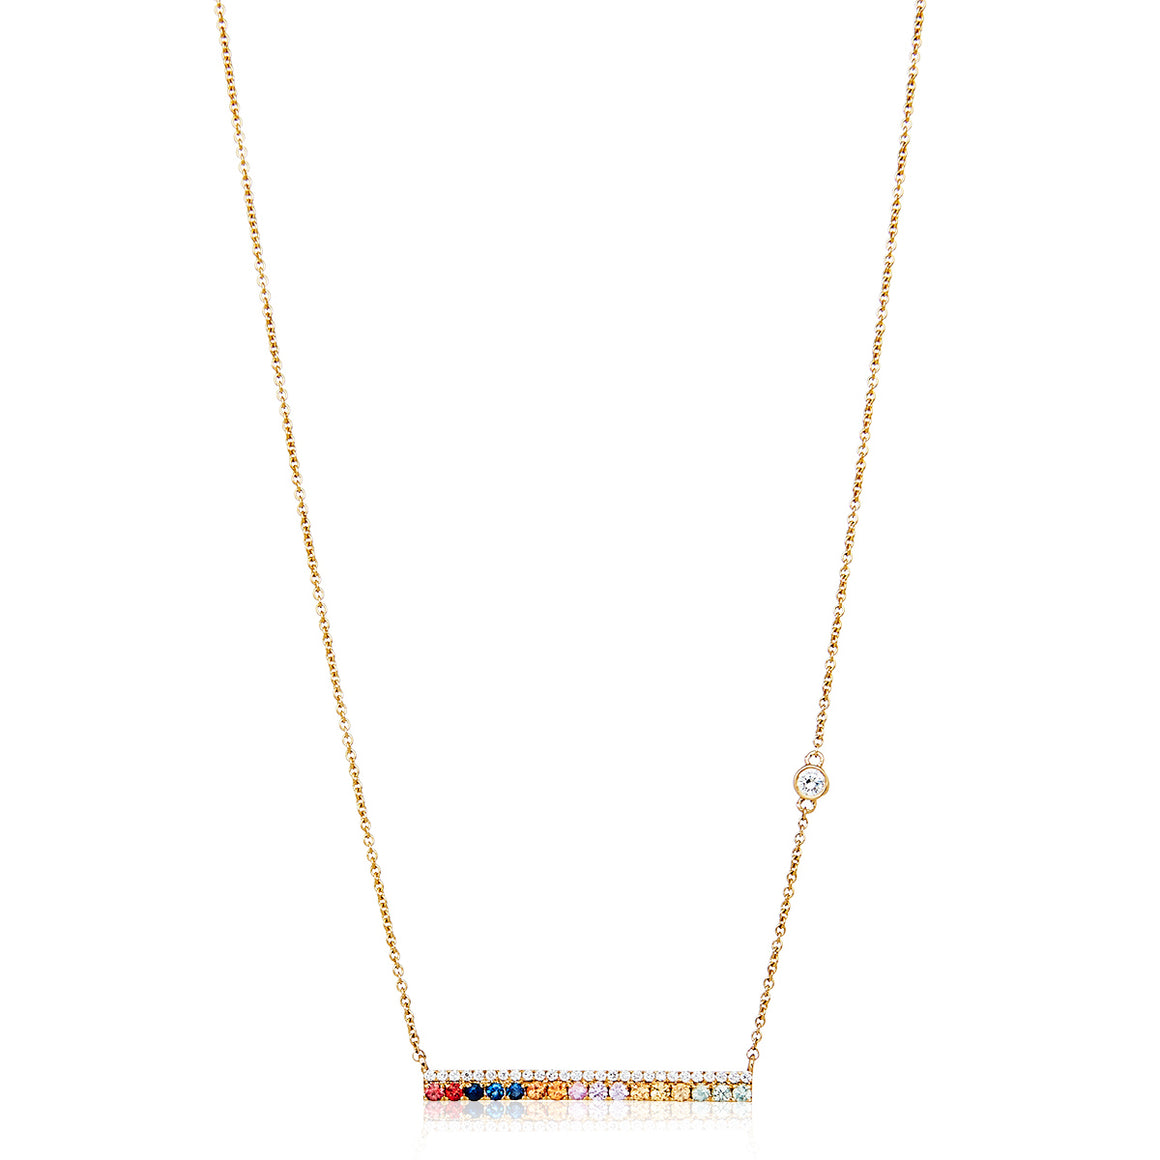 18ct Diamond & Sapphire Bar Necklace - Gemma Stone Jewellery